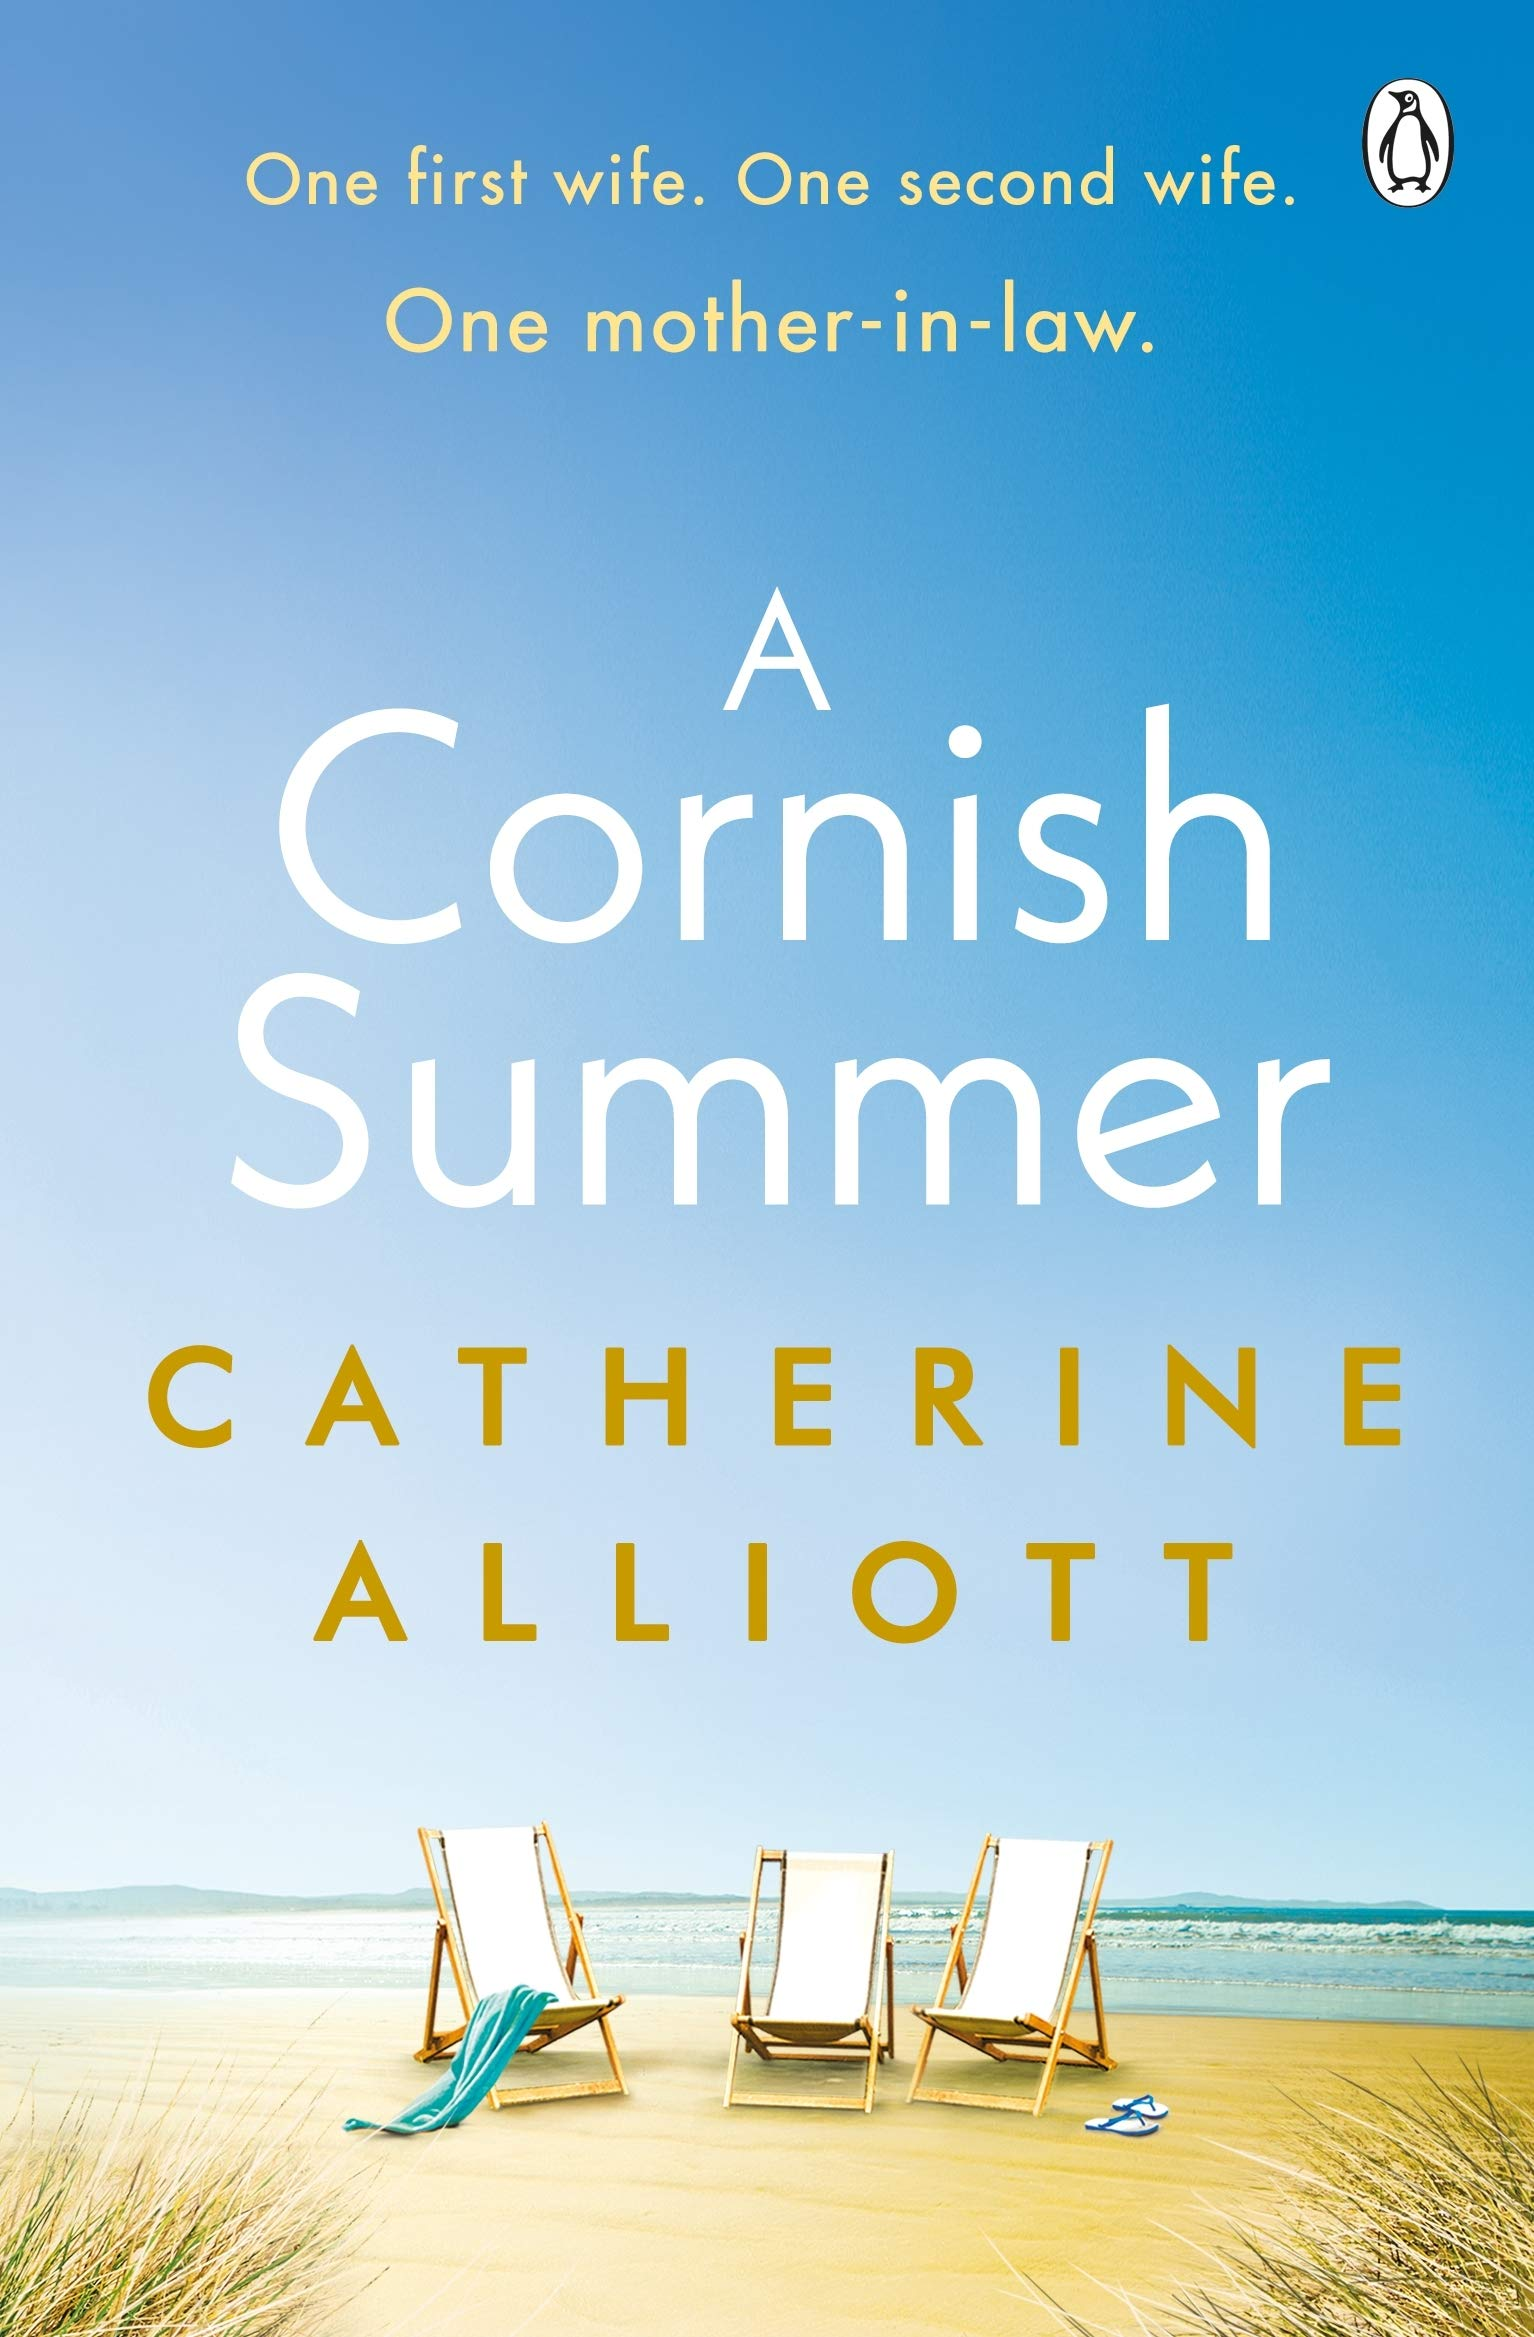 Summer Reads with Catherine Alliott & Fanny Blake